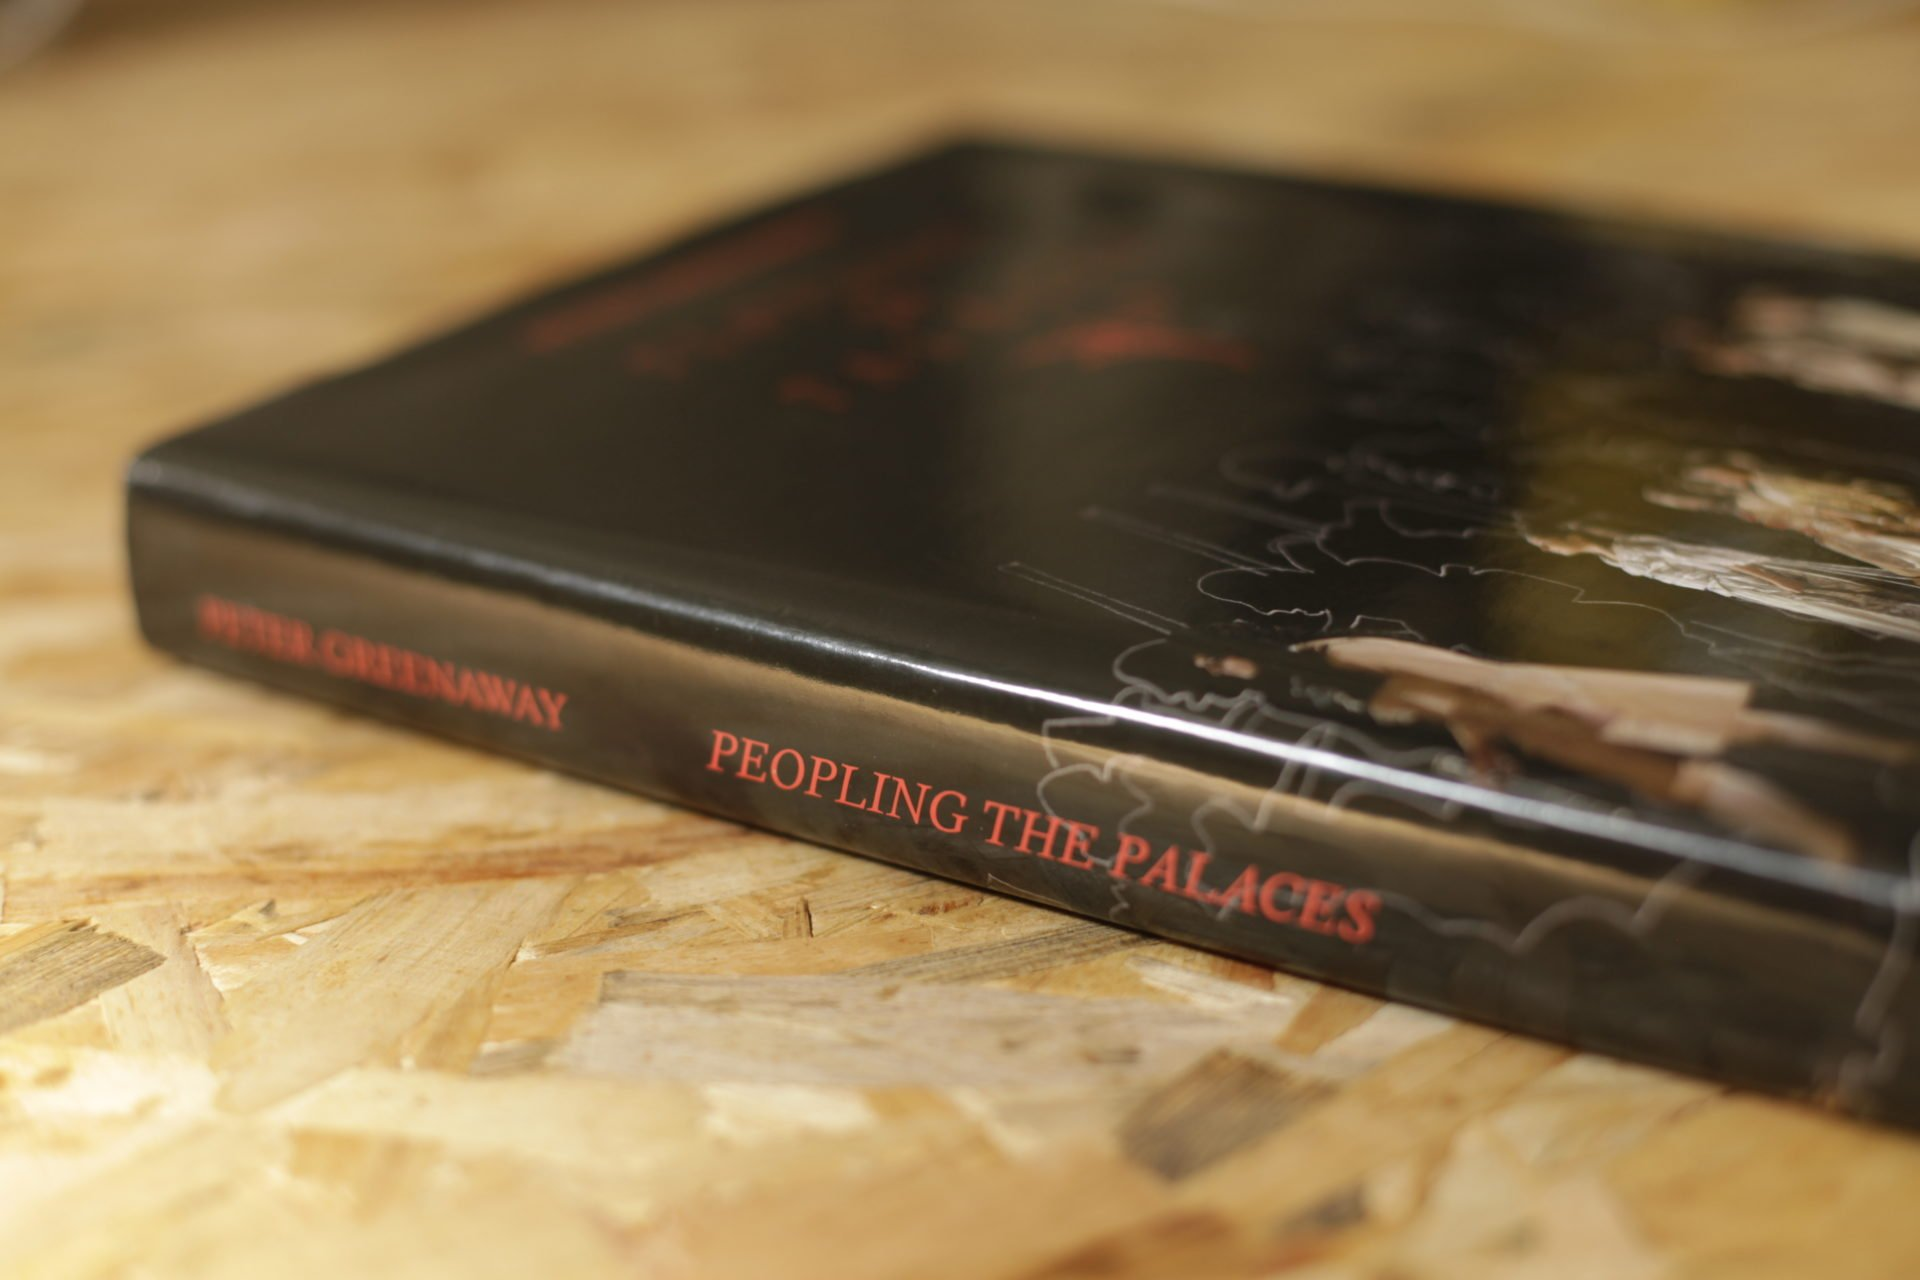 boombang design peopling the palaces peter greenaway cover 1 1